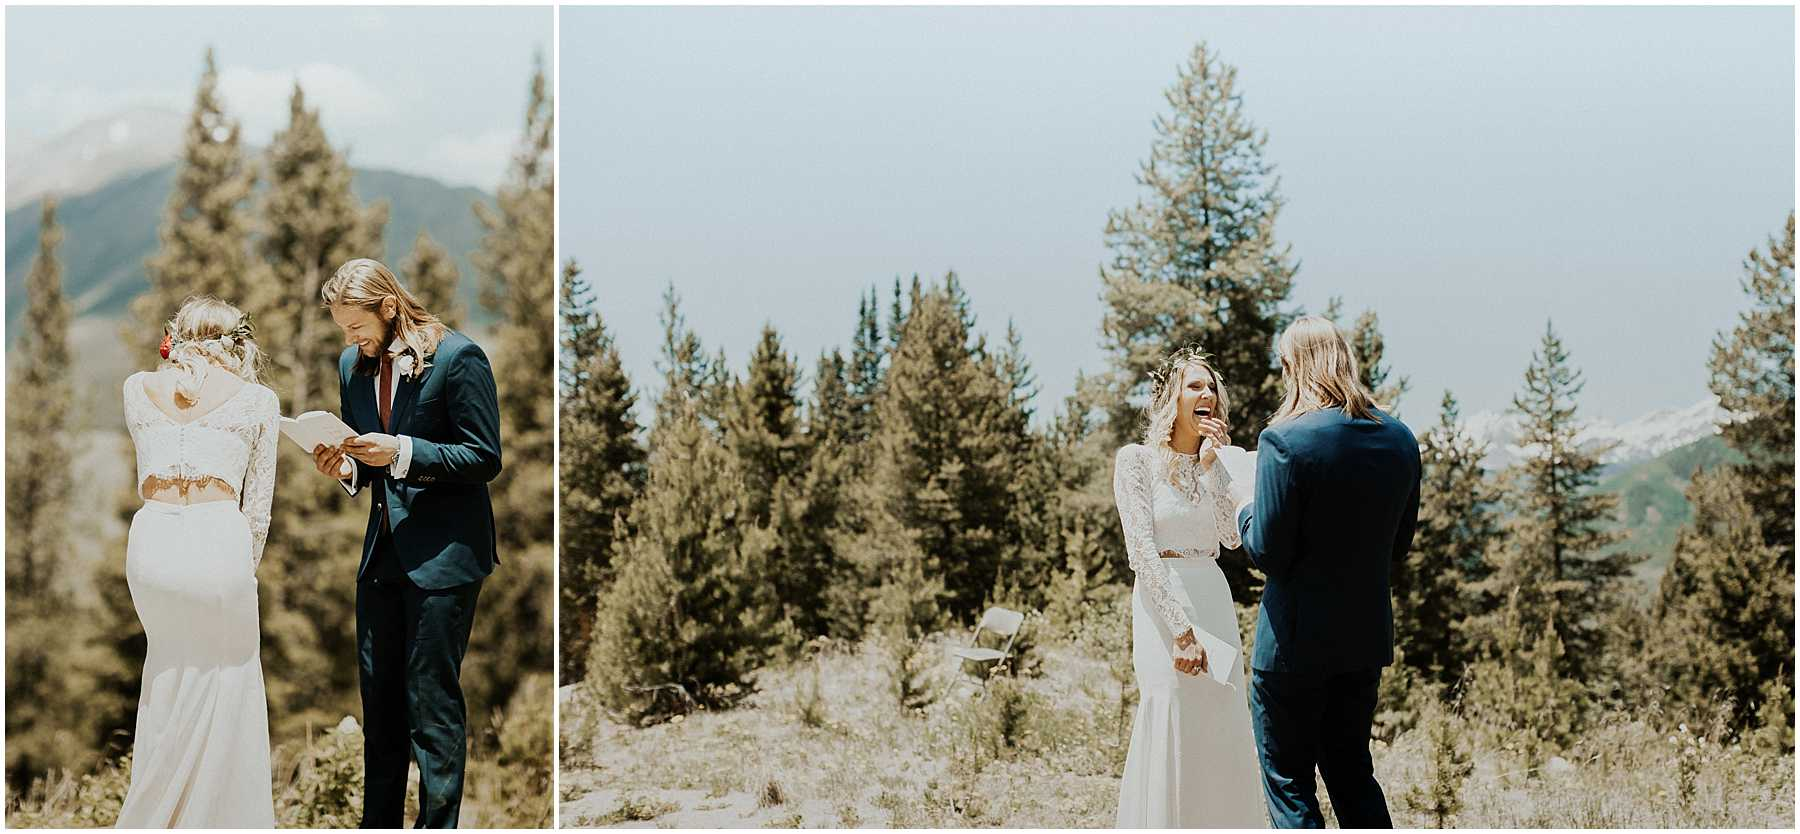 crested_butte_intimate_wedding_colorado_0058.jpg